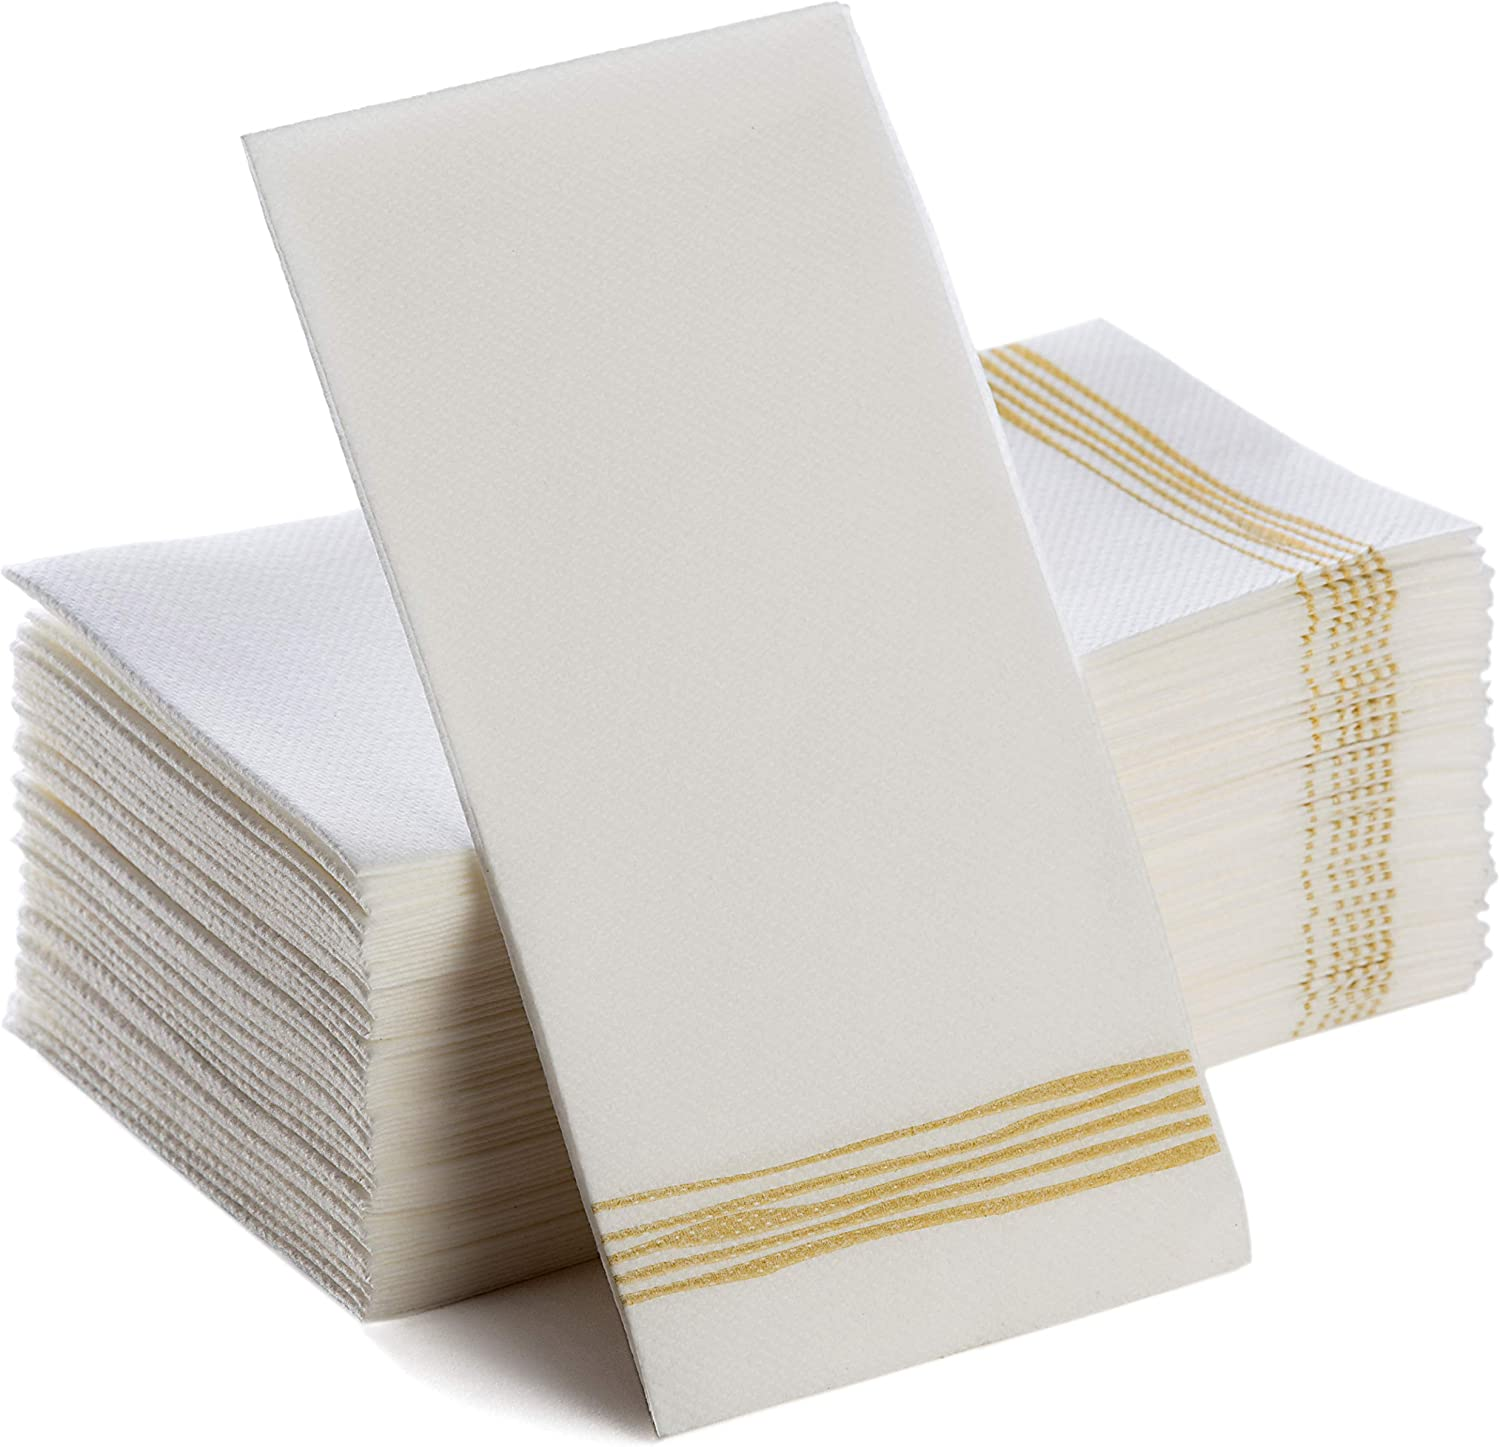 Disposable Hand Towels | Decorative Linen-Feel Paper Napkins | Soft, Absorbent Disposable Paper Guest Towels for Kitchen, Bathroom, Parties, Weddings, Dinners Or Events White and Gold Napkins 100 Pack